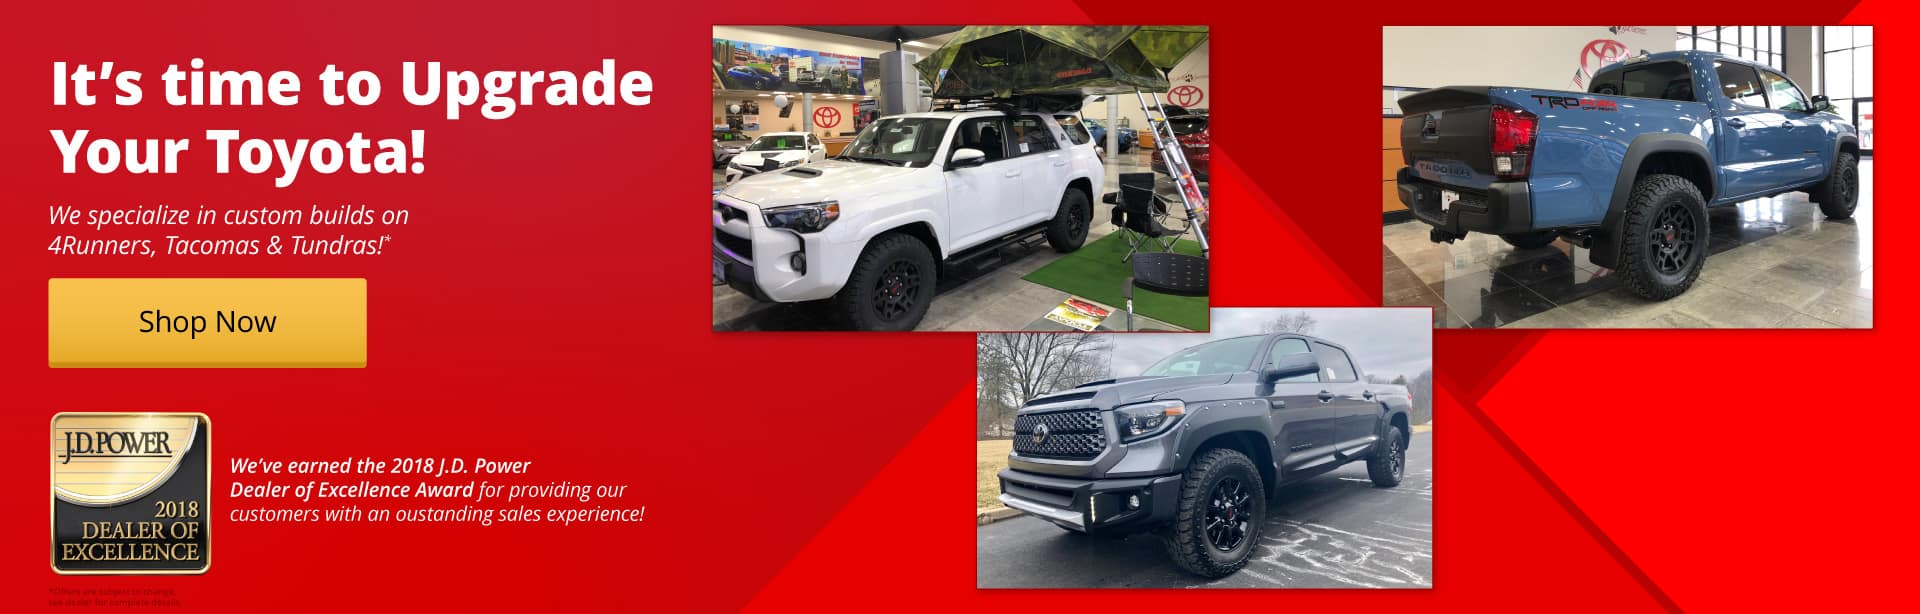 We specialize in custom builds for your Toyota!